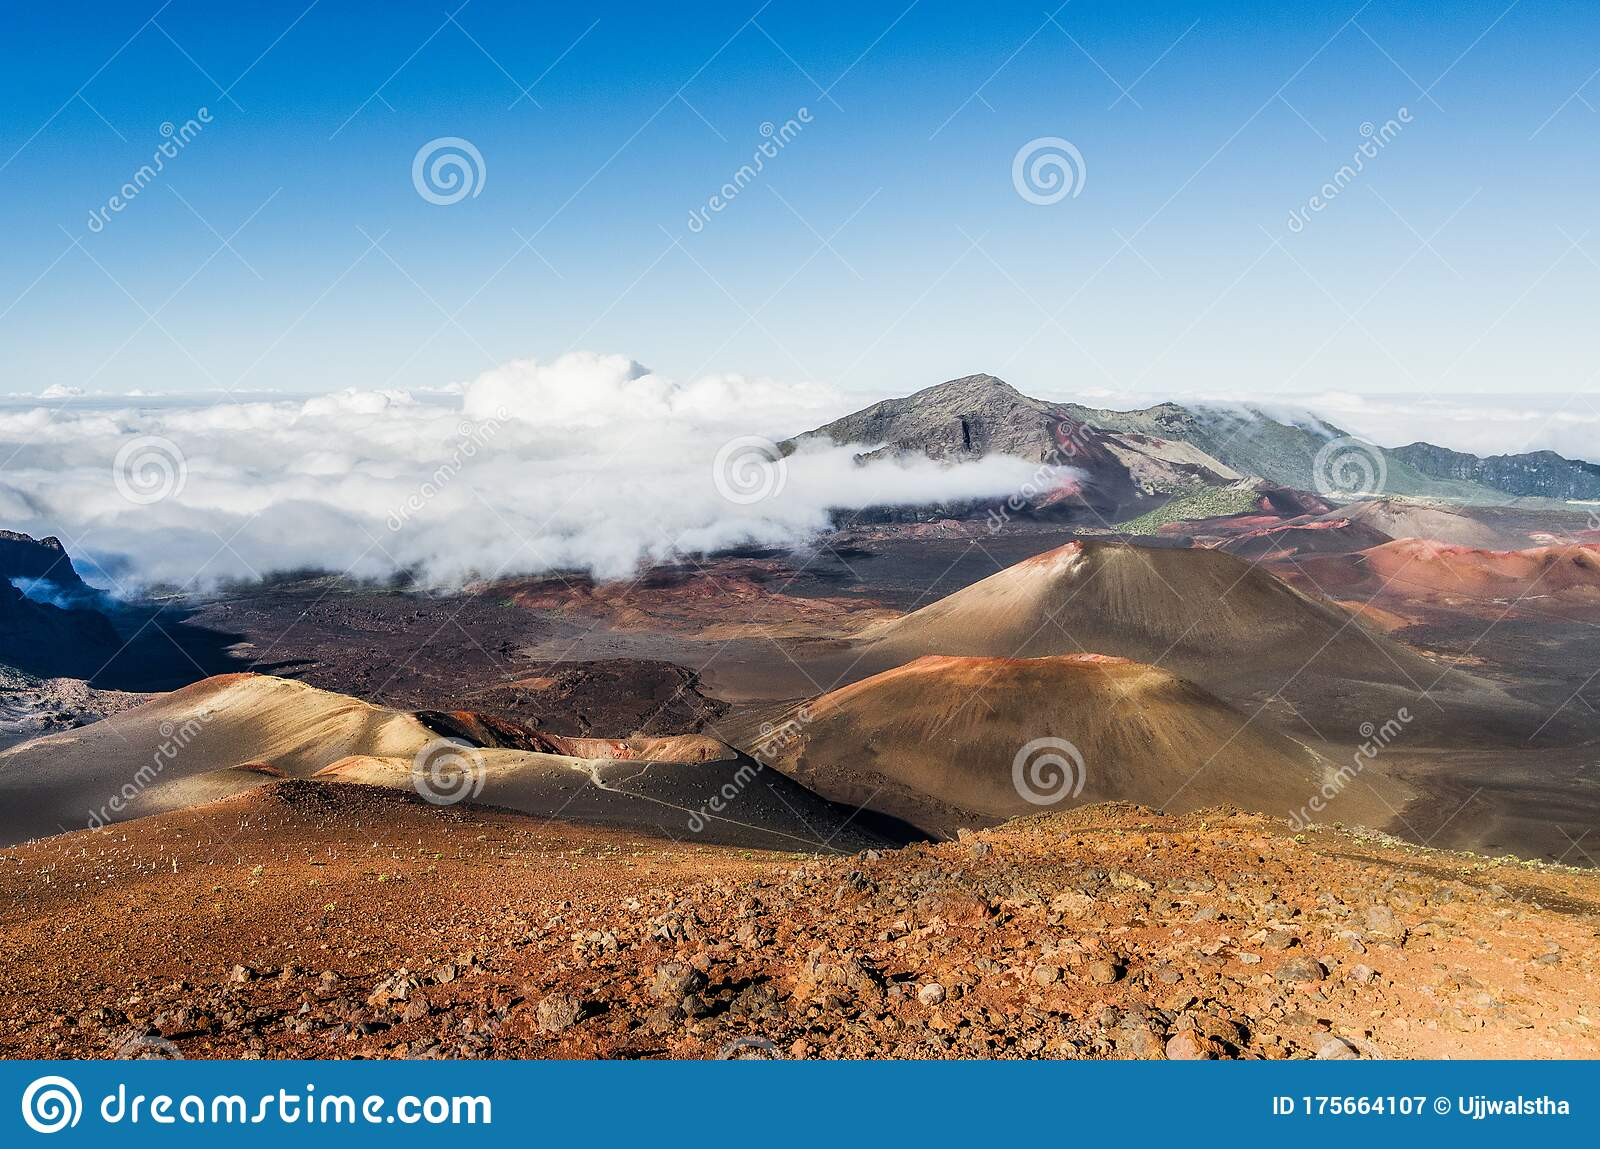 Majestic View Of Craters In Haleakala National Park In Maui Hawaii Usa Stock Image Image Of National Kauai 175664107